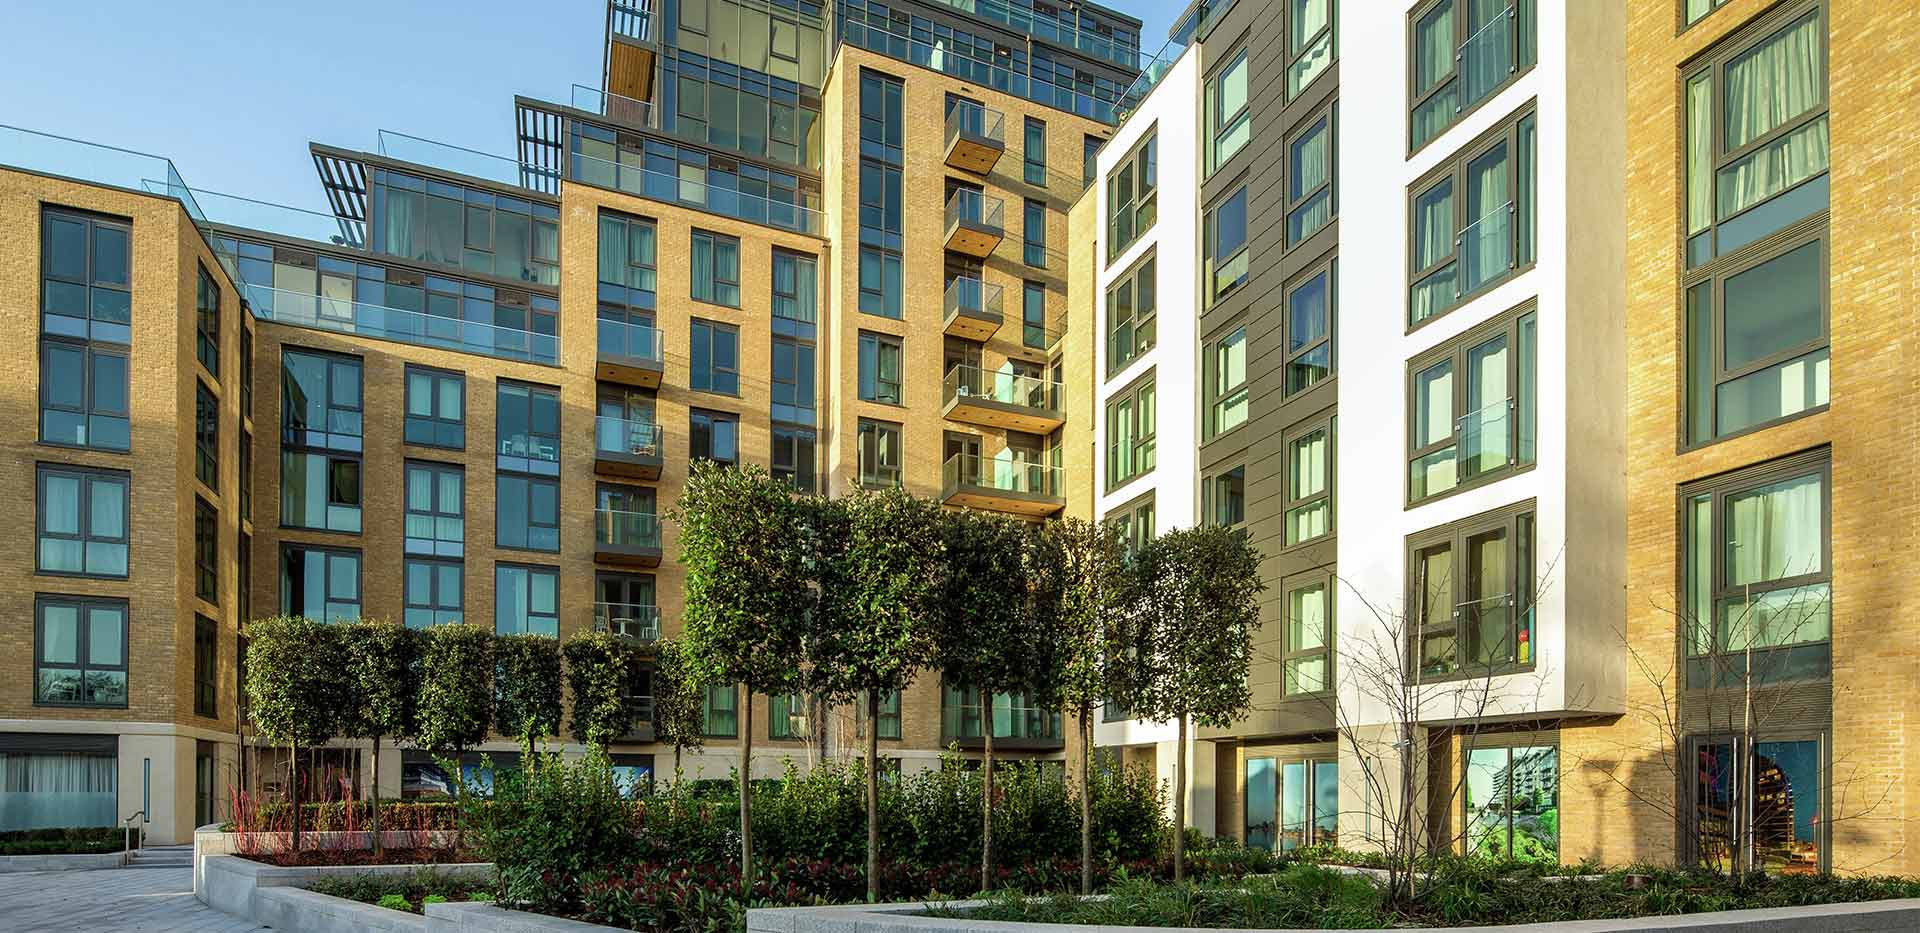 Berkeley, Battersea Reach, Development Exterior 02